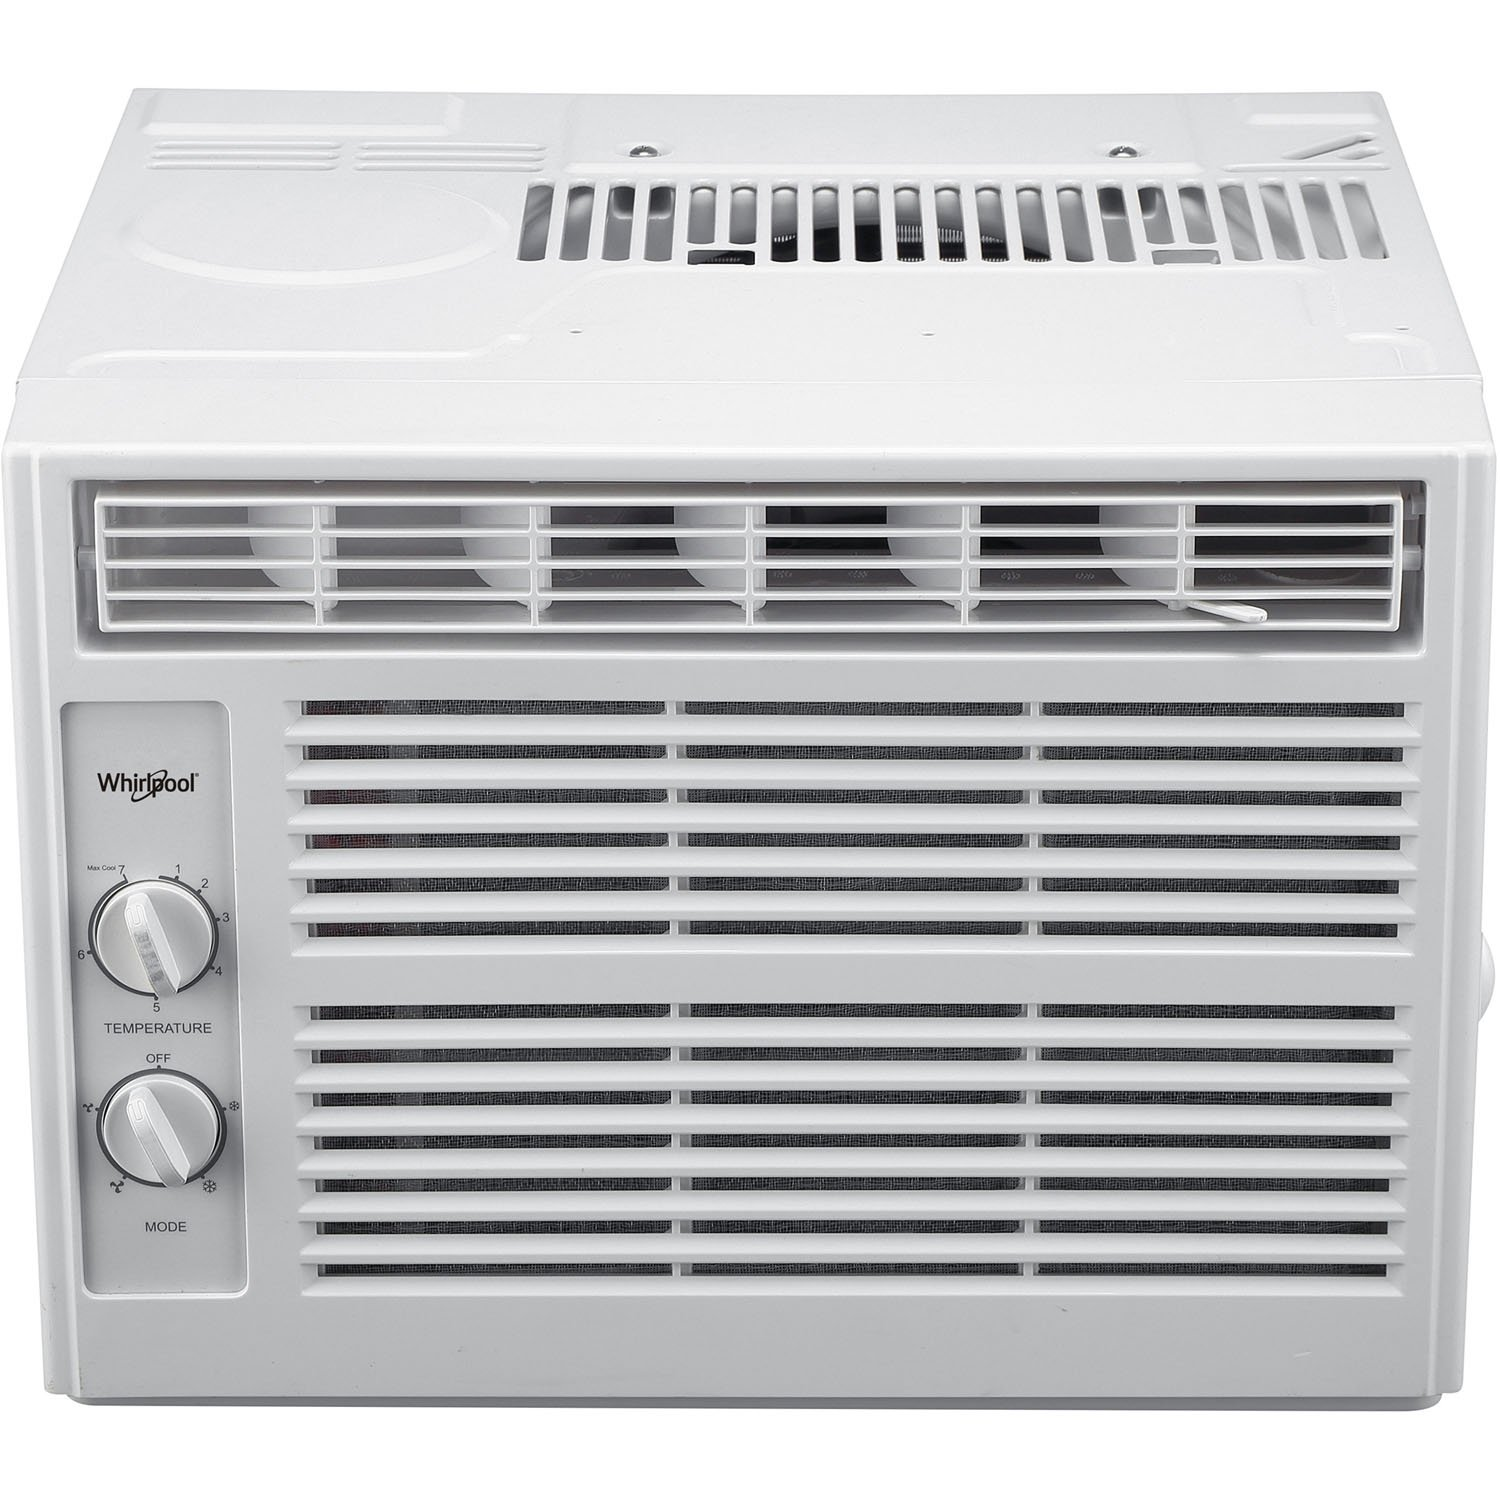 Whirlpool 5,000 BTU 115V Window-Mounted Air Conditioner with Mechanical Controls, White WHAW050BW